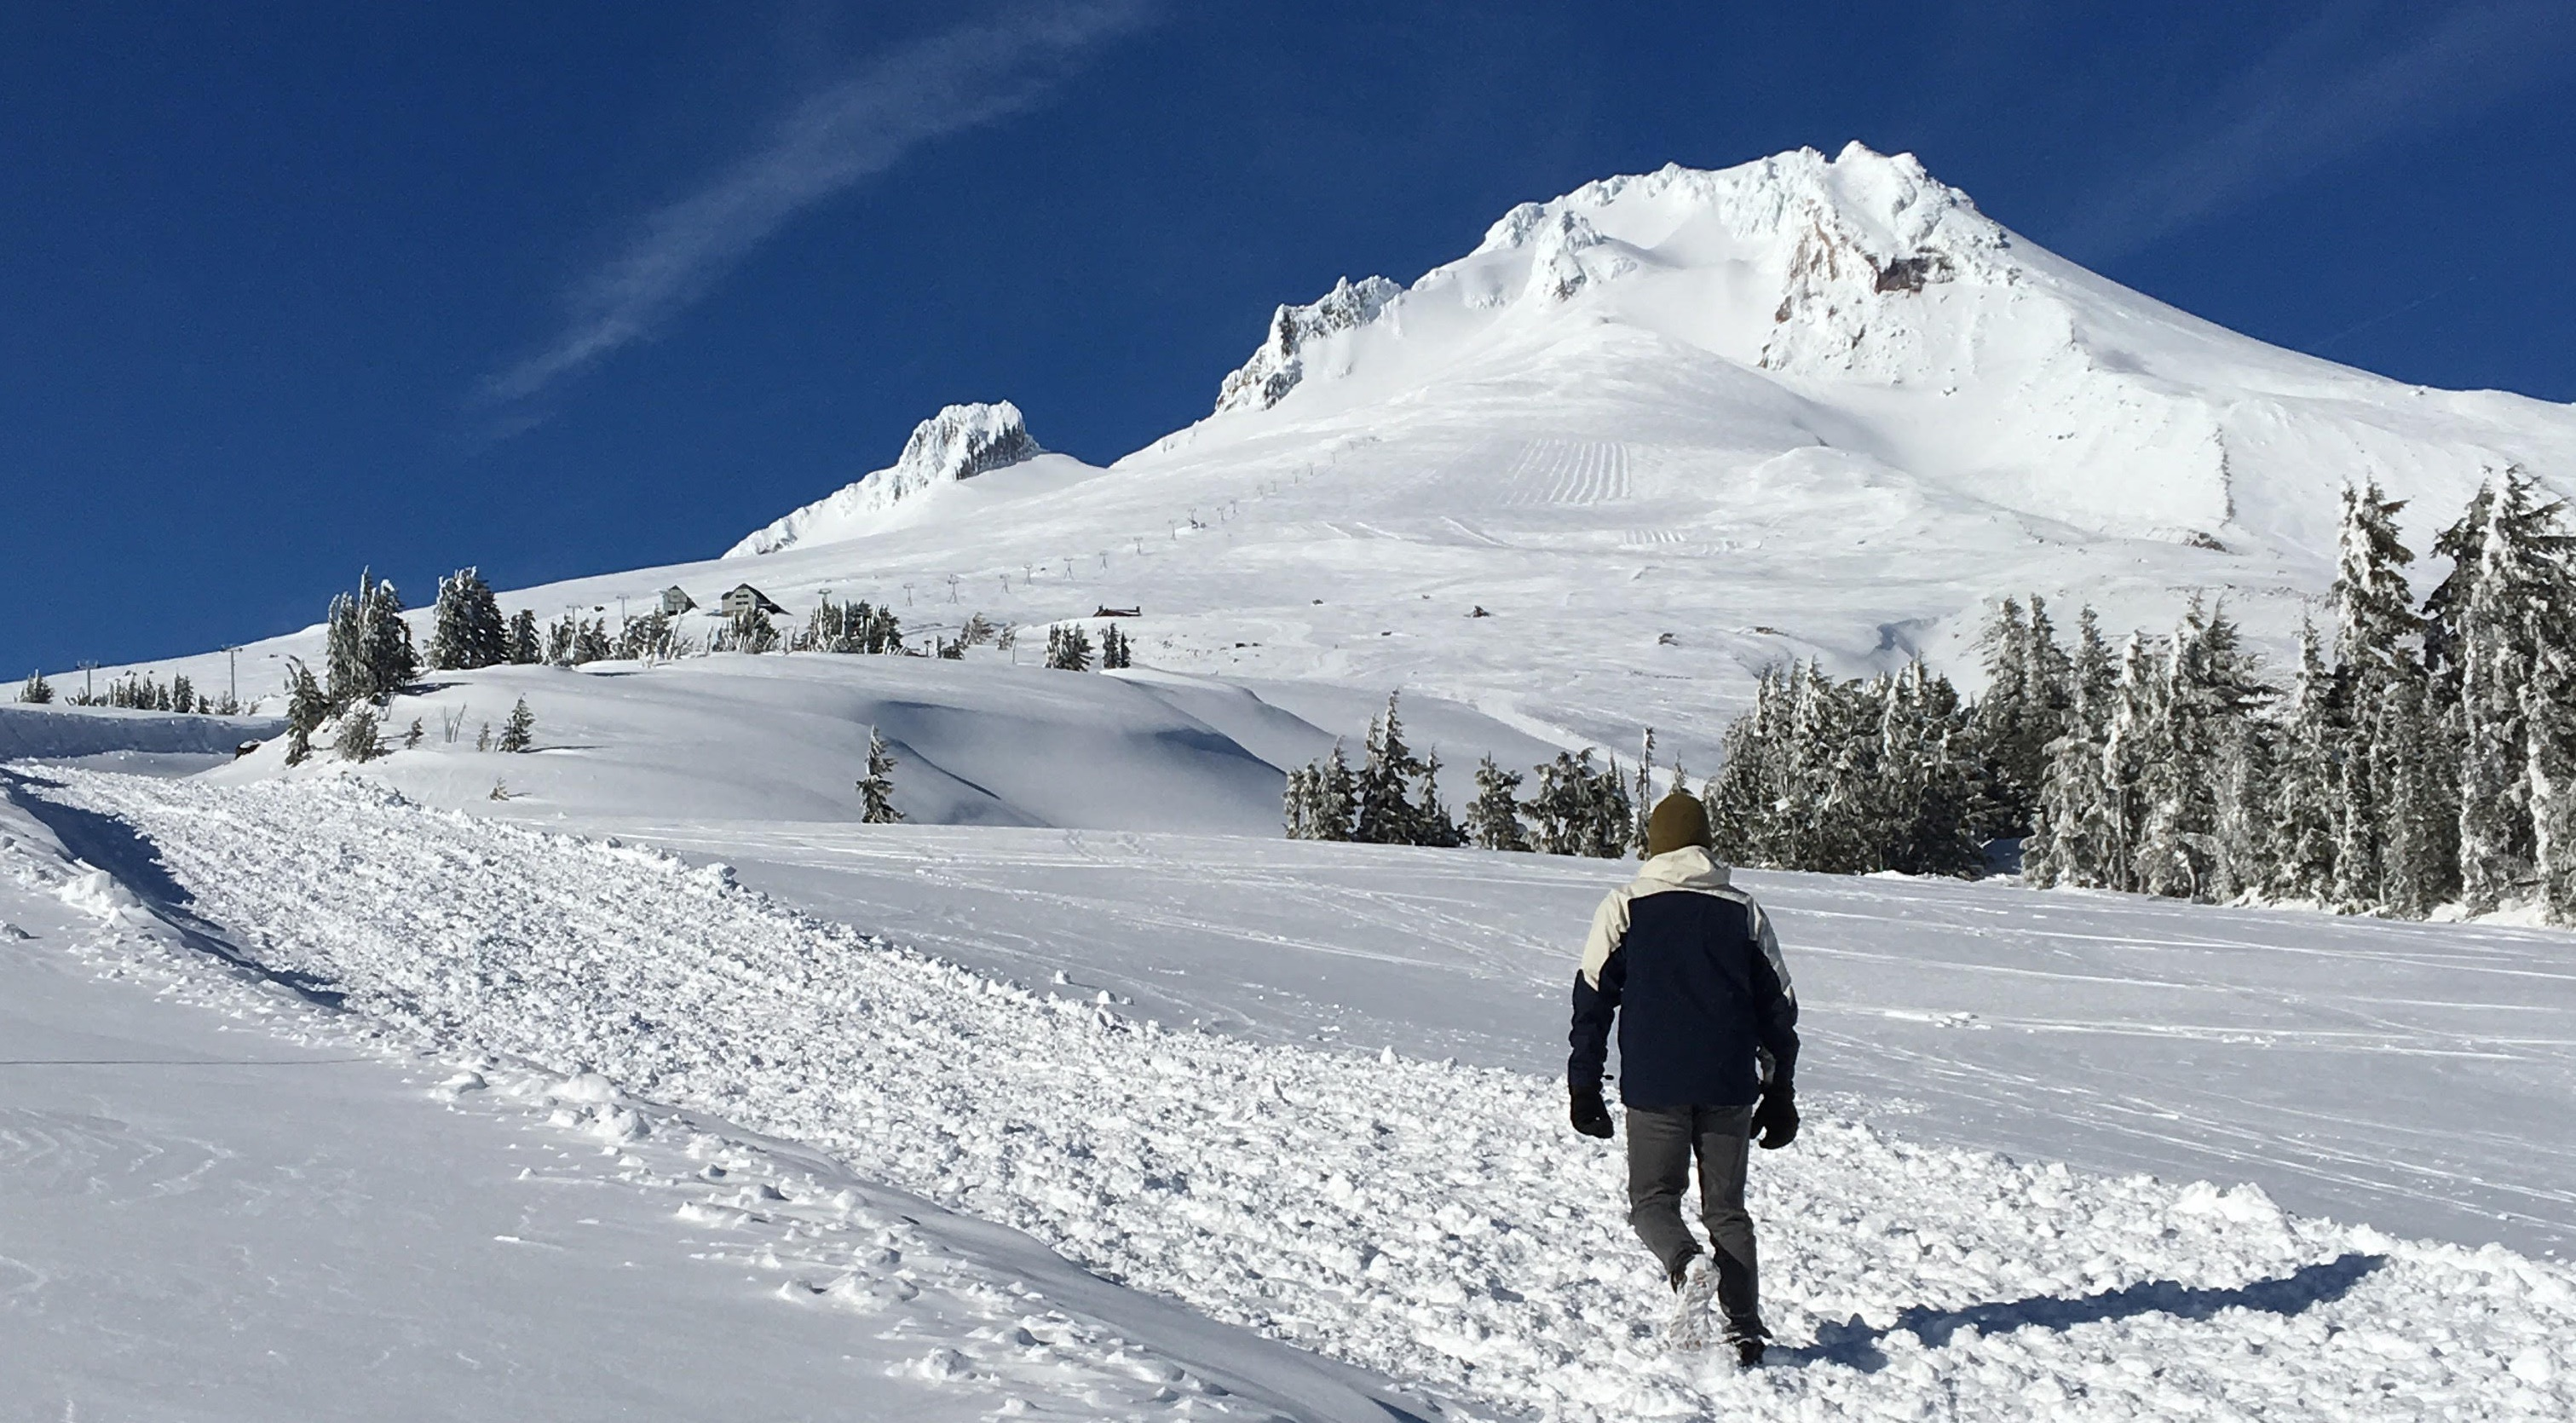 Ian Frost at Mt. Hood